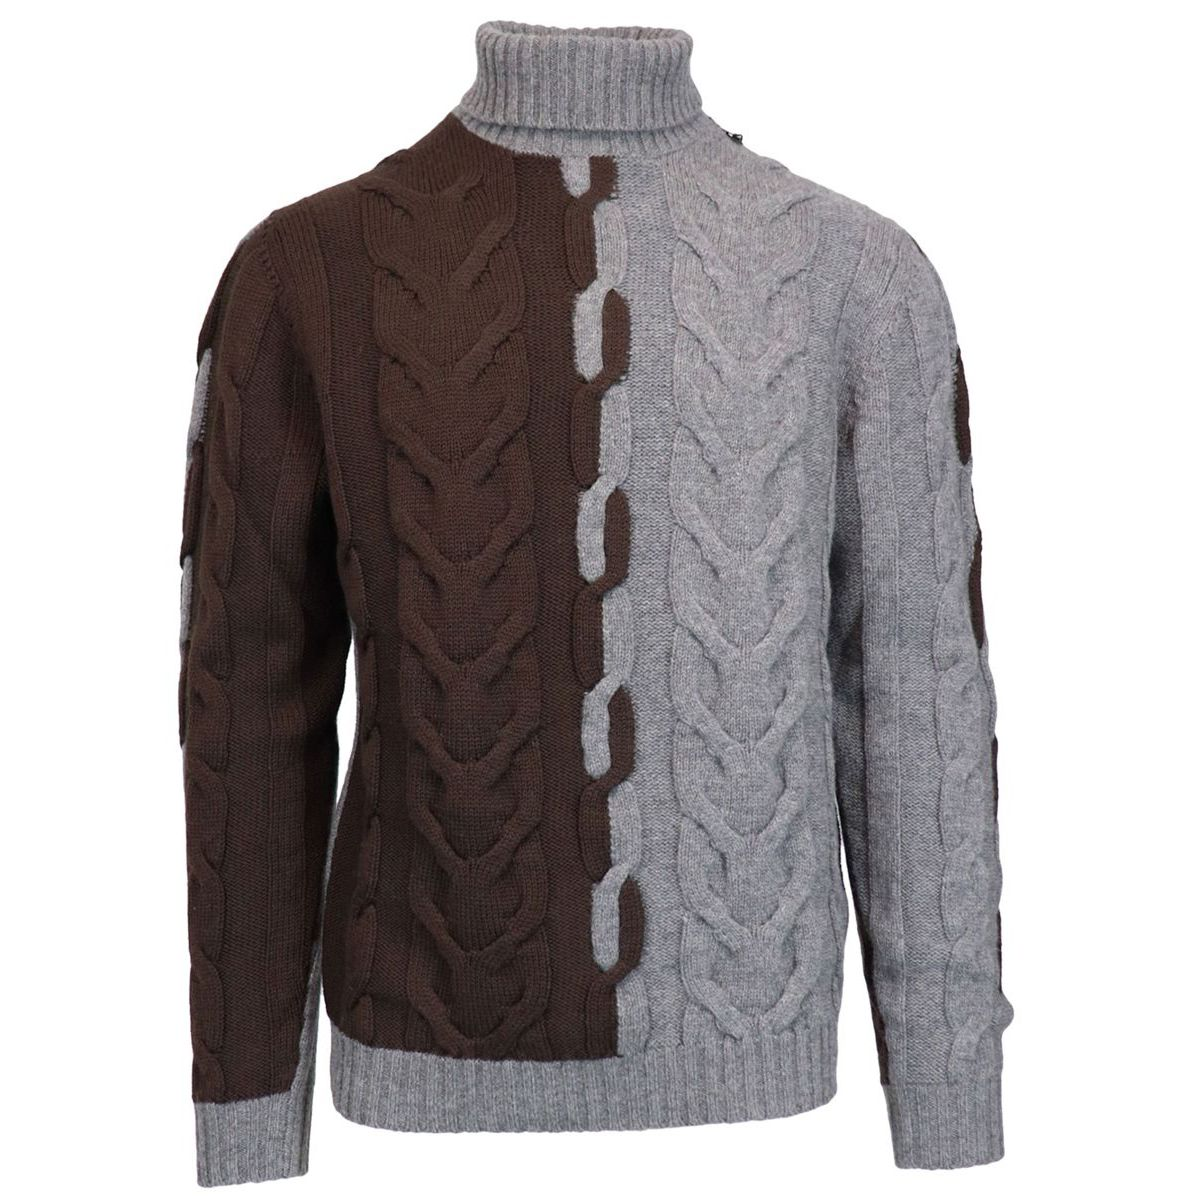 Two-colored turtleneck sweater in woven wool and cashmere Moro Alpha Studio